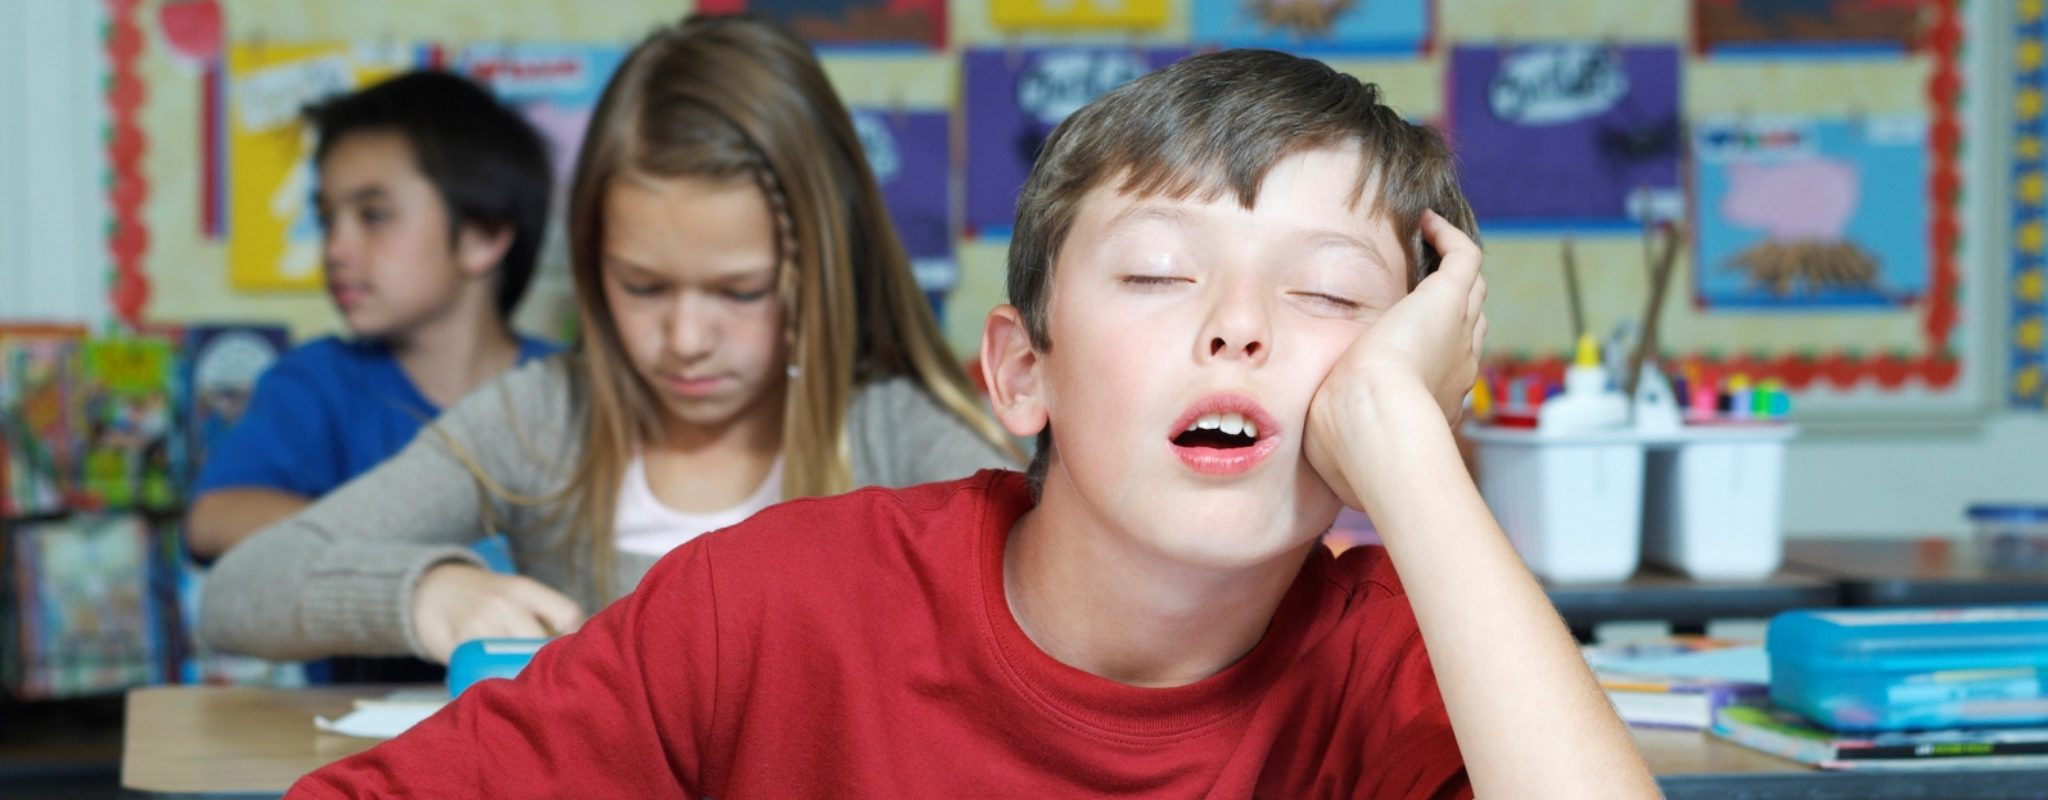 Boy sleeping in class needs back-to-school sleep schedule